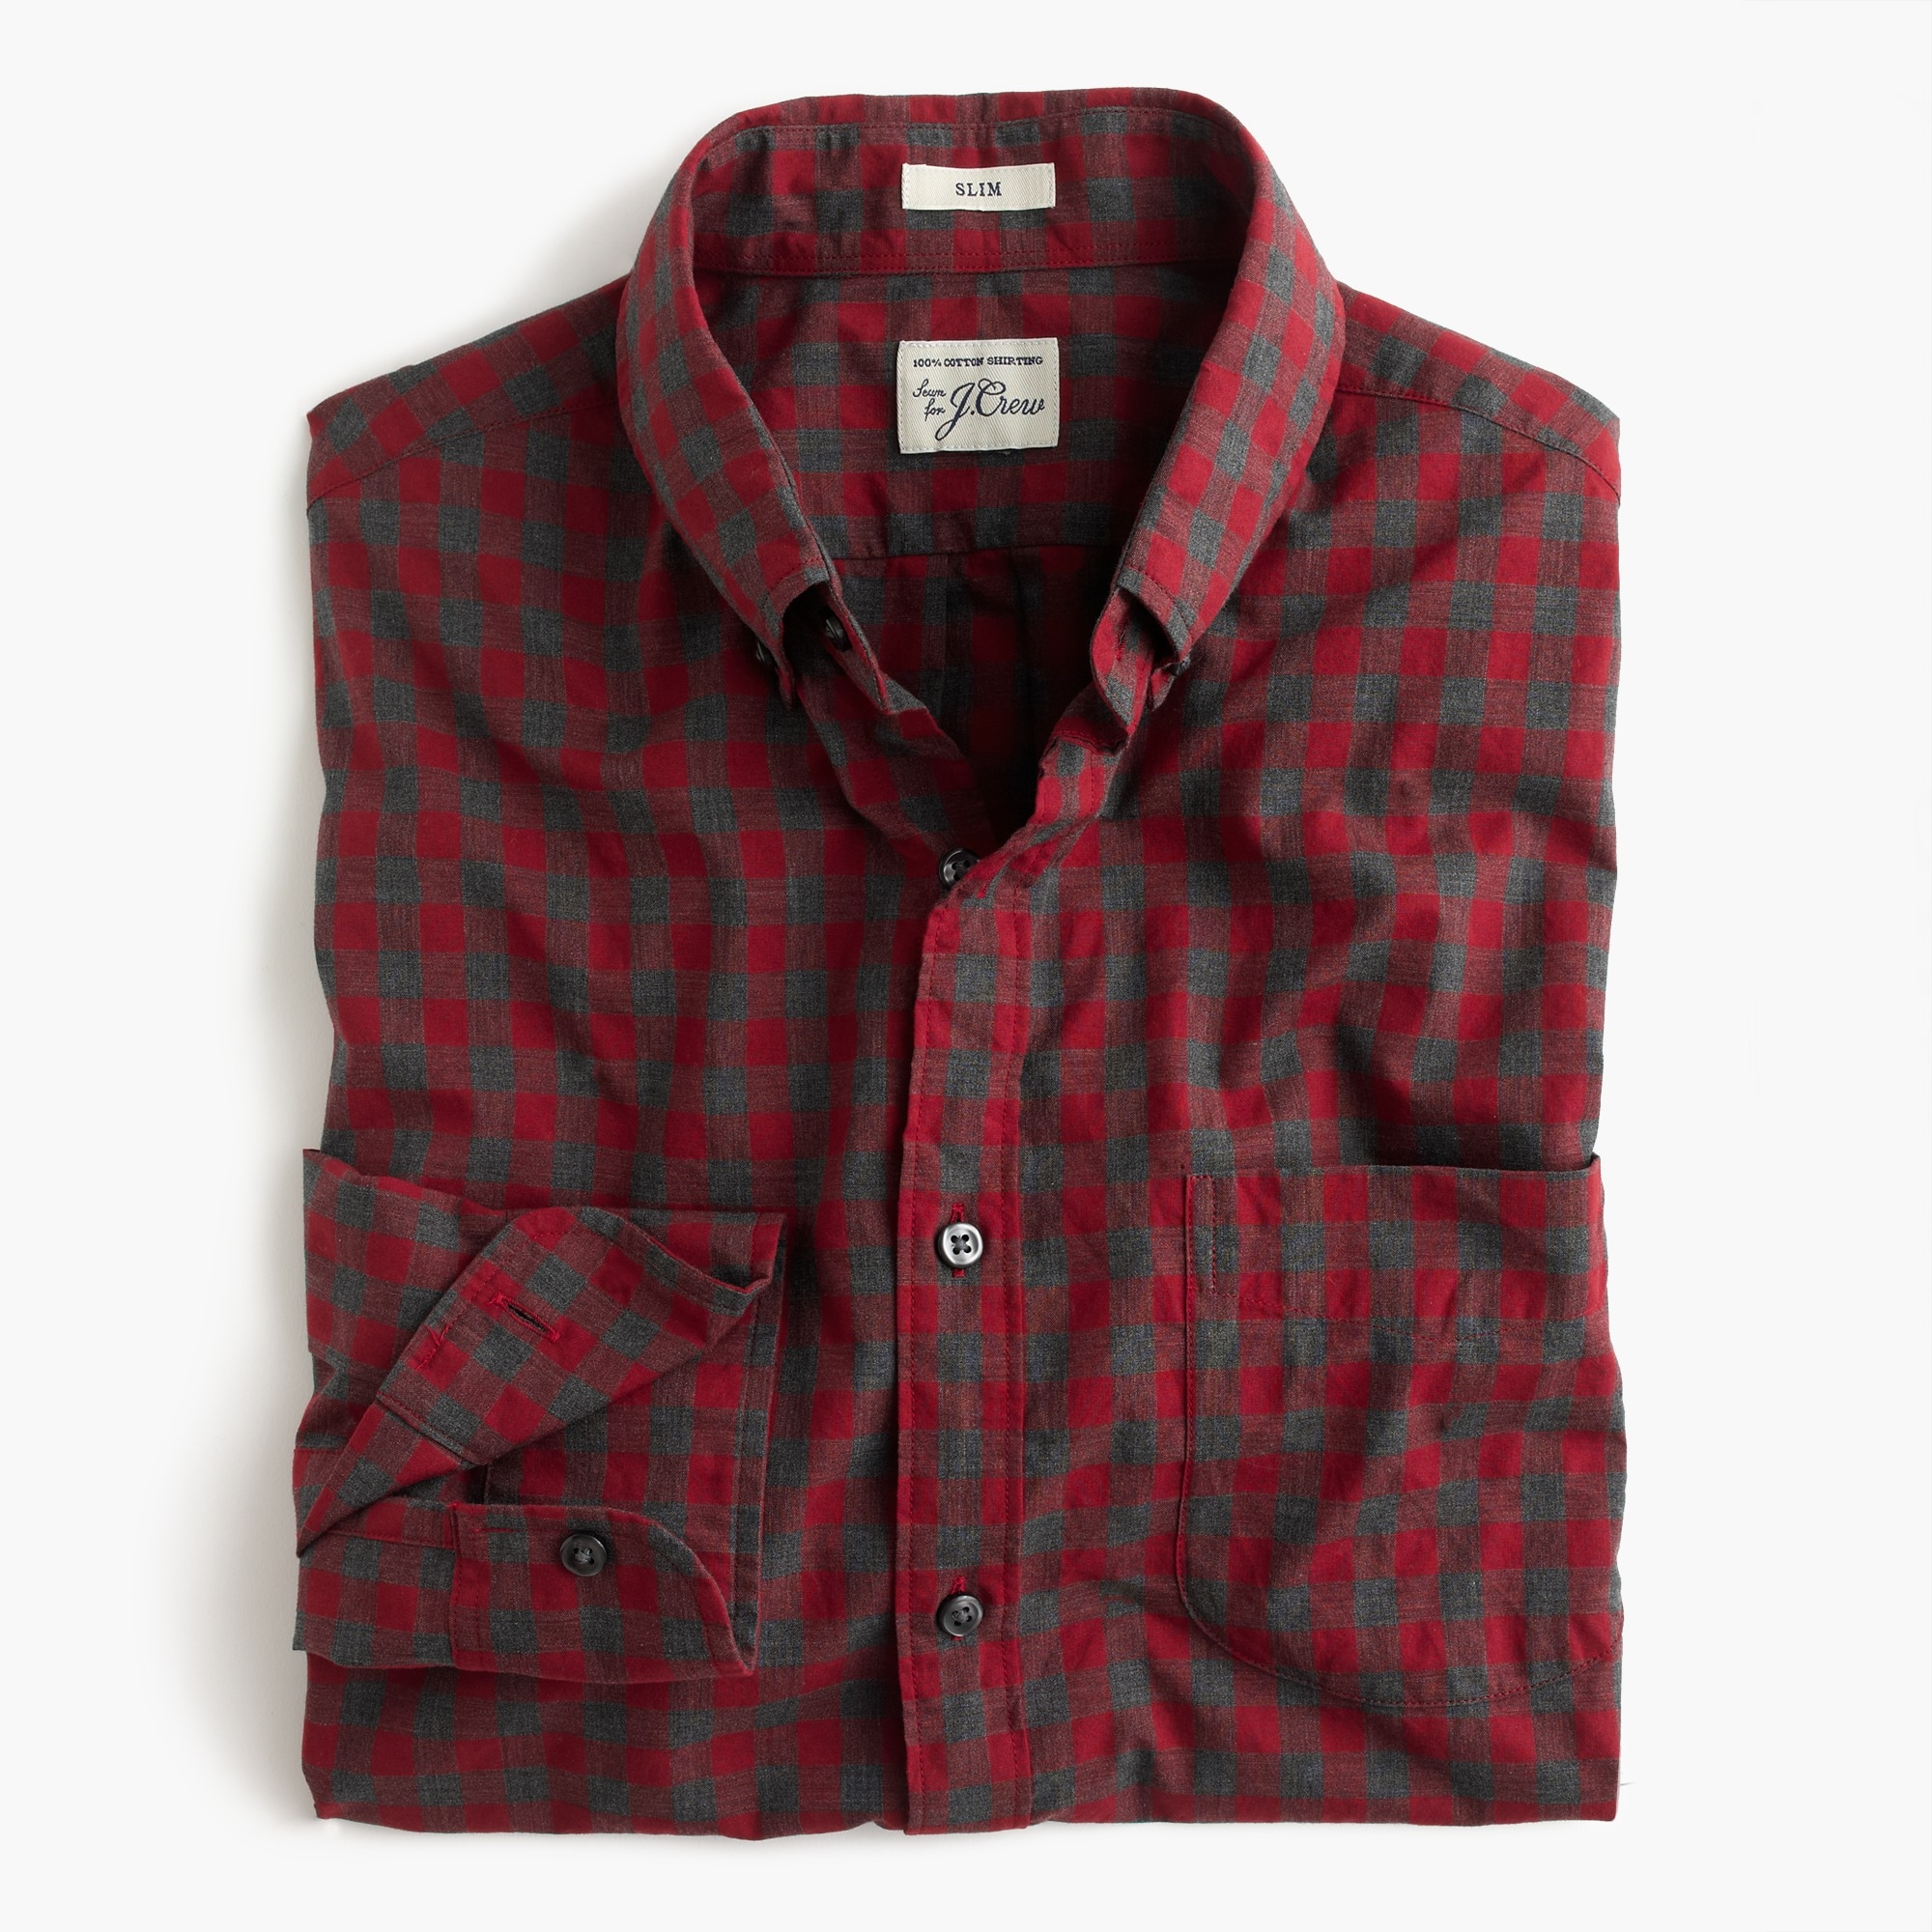 slim secret wash shirt in red gingham heather poplin : men's shirts